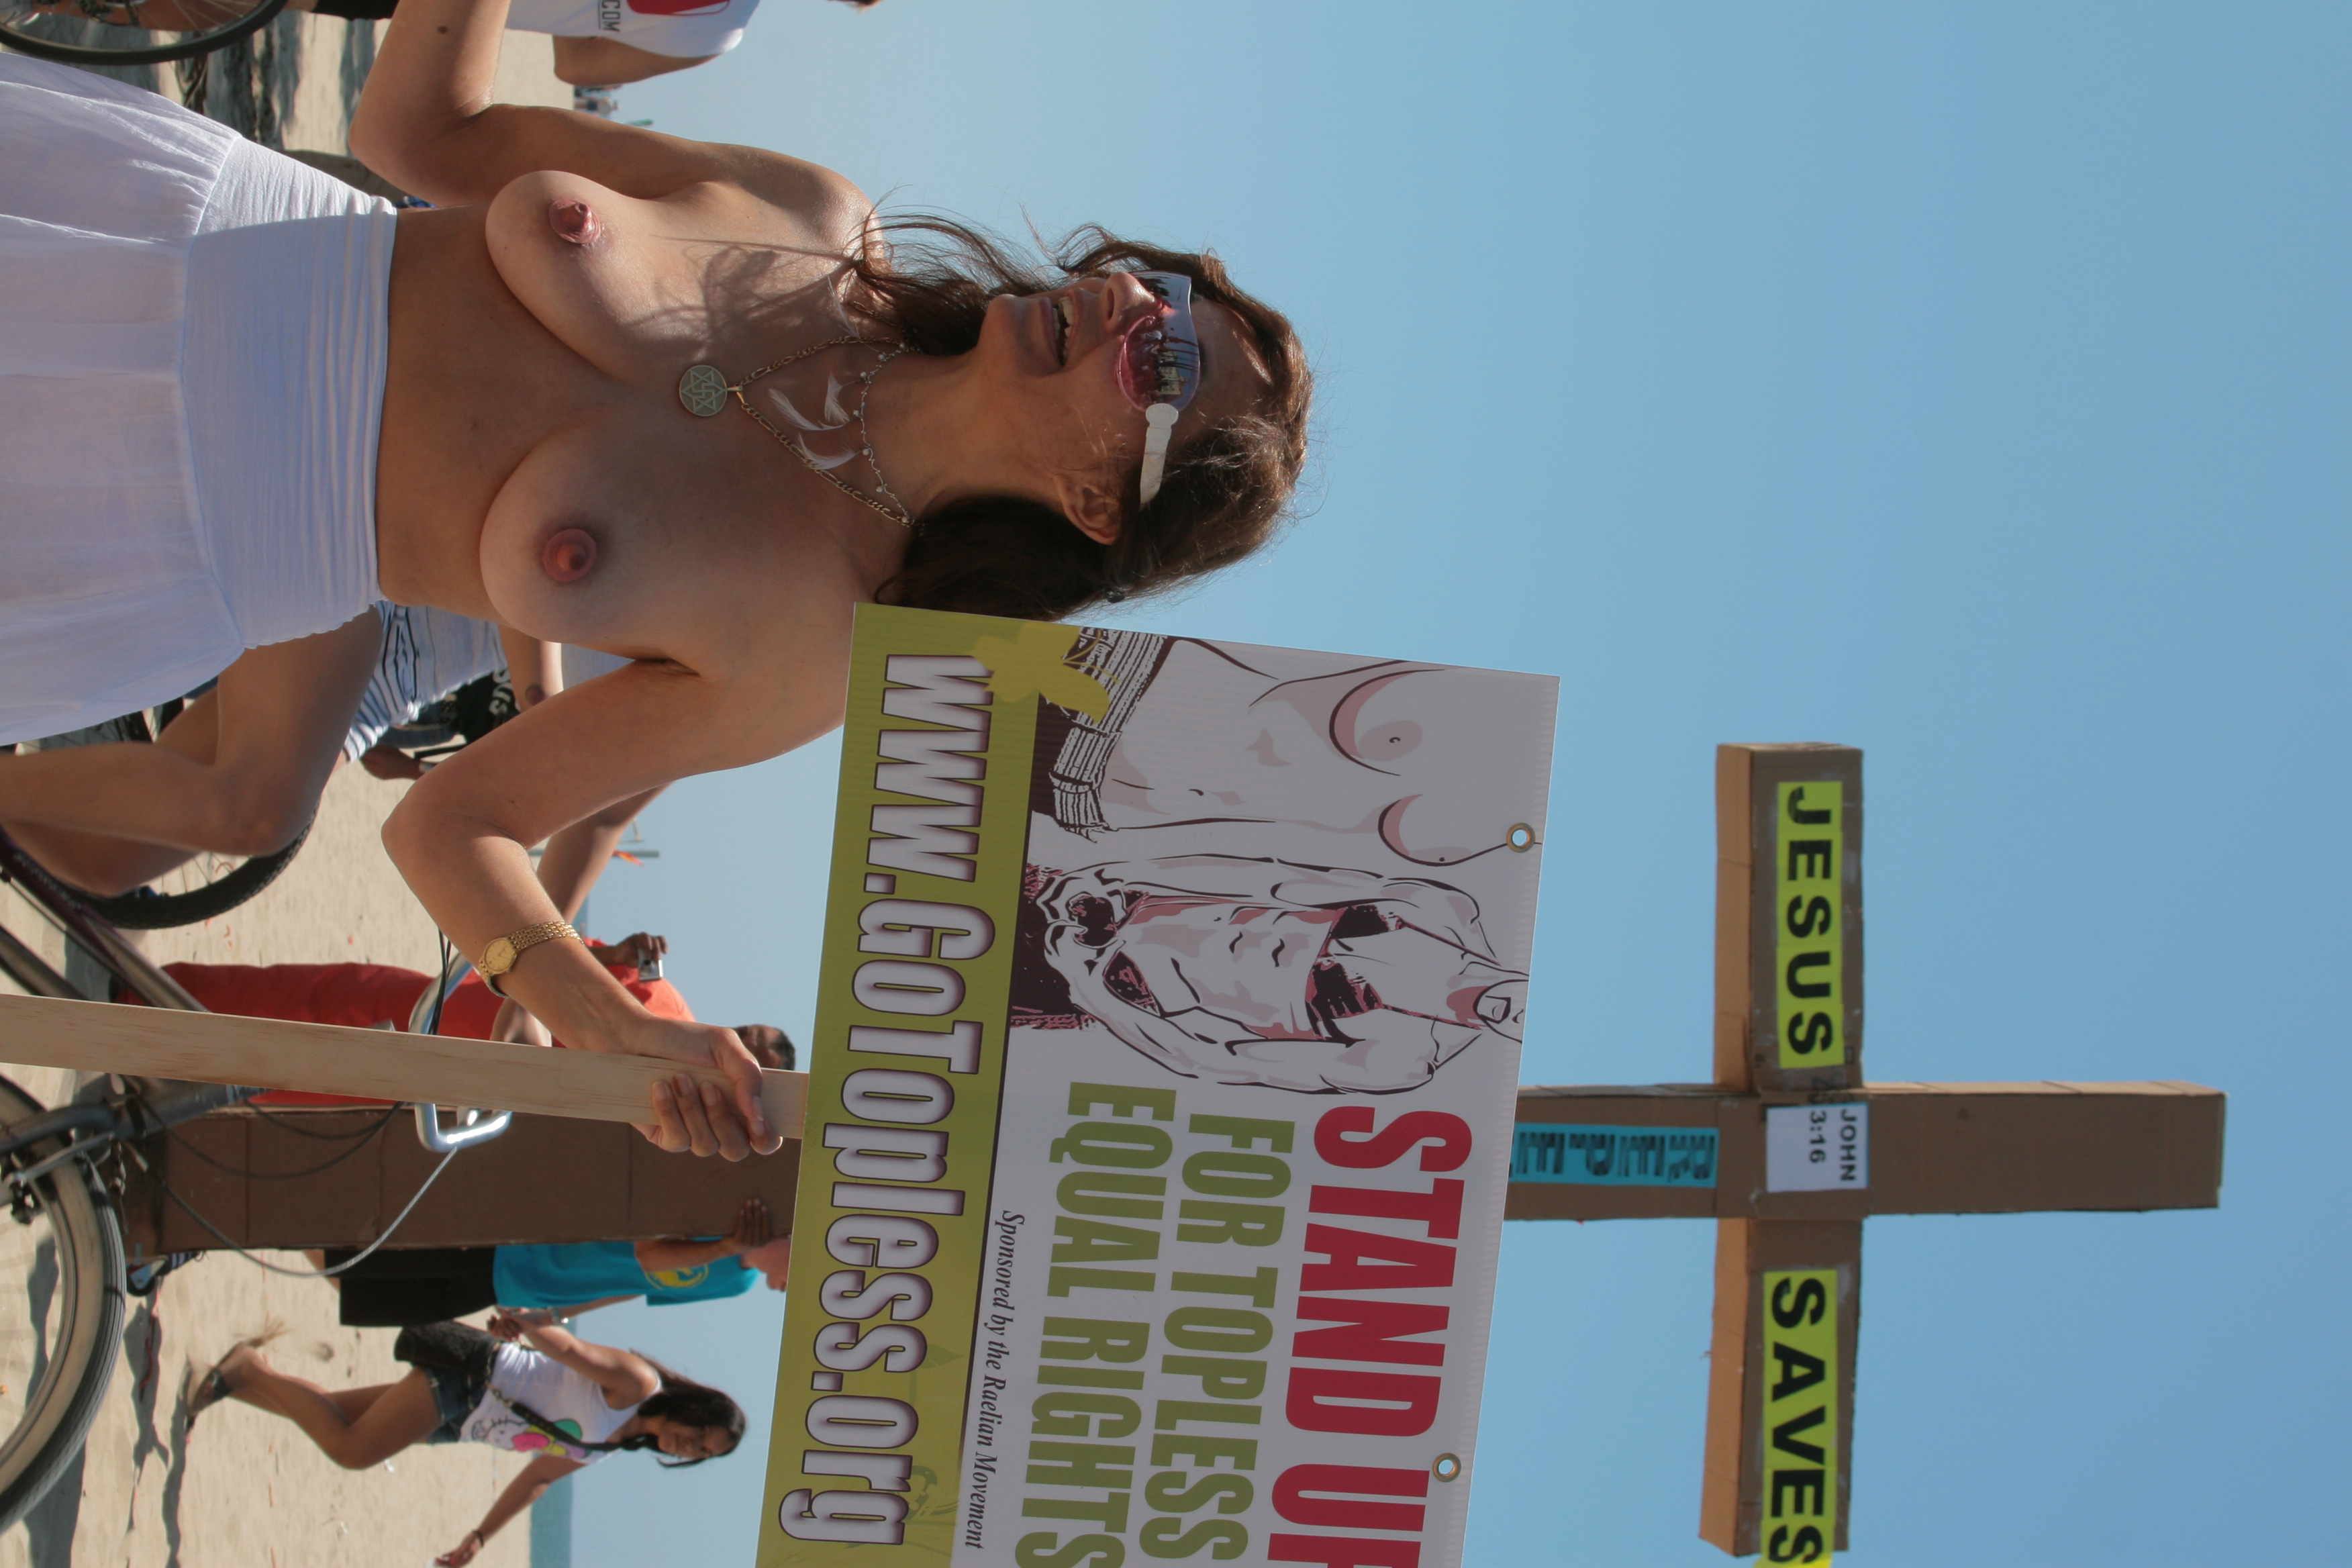 Naked girls at events Go Topless Day Wikipedia